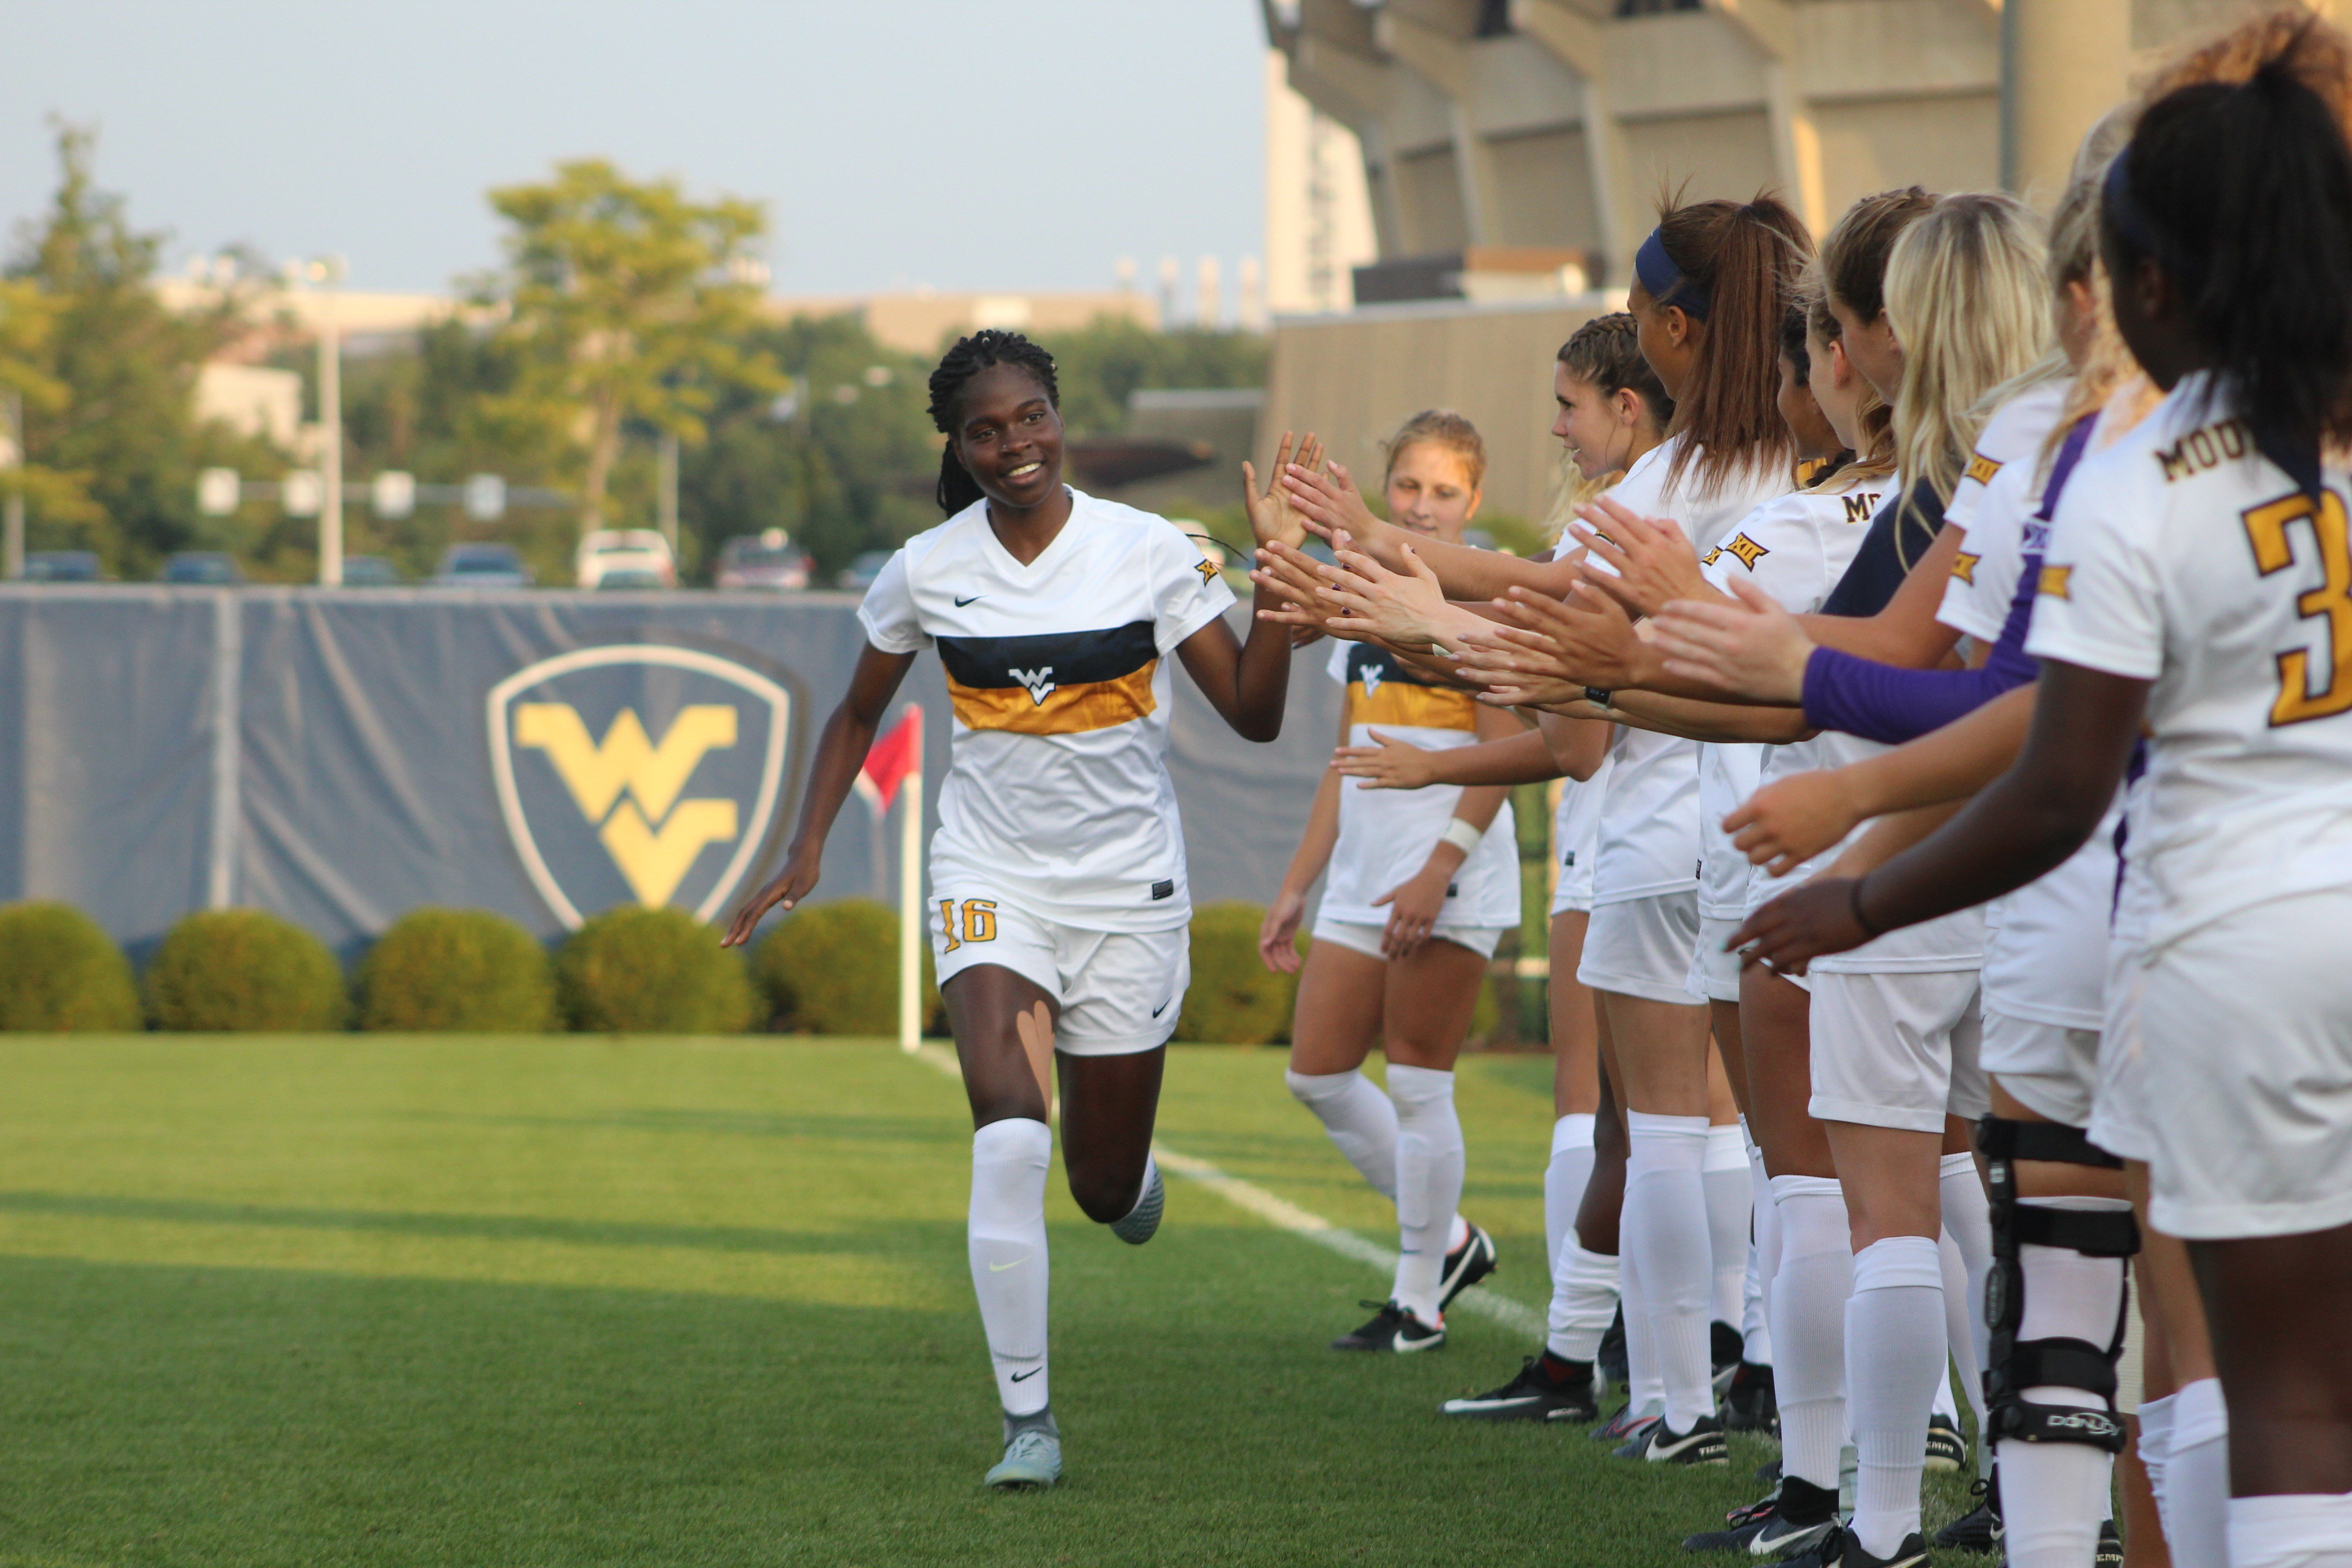 The WVU women's soccer team is set to host Bucknell on Saturday, November 11 in the first round of the NCAA Tournament. (PHOTO: Anjelica Trinone)